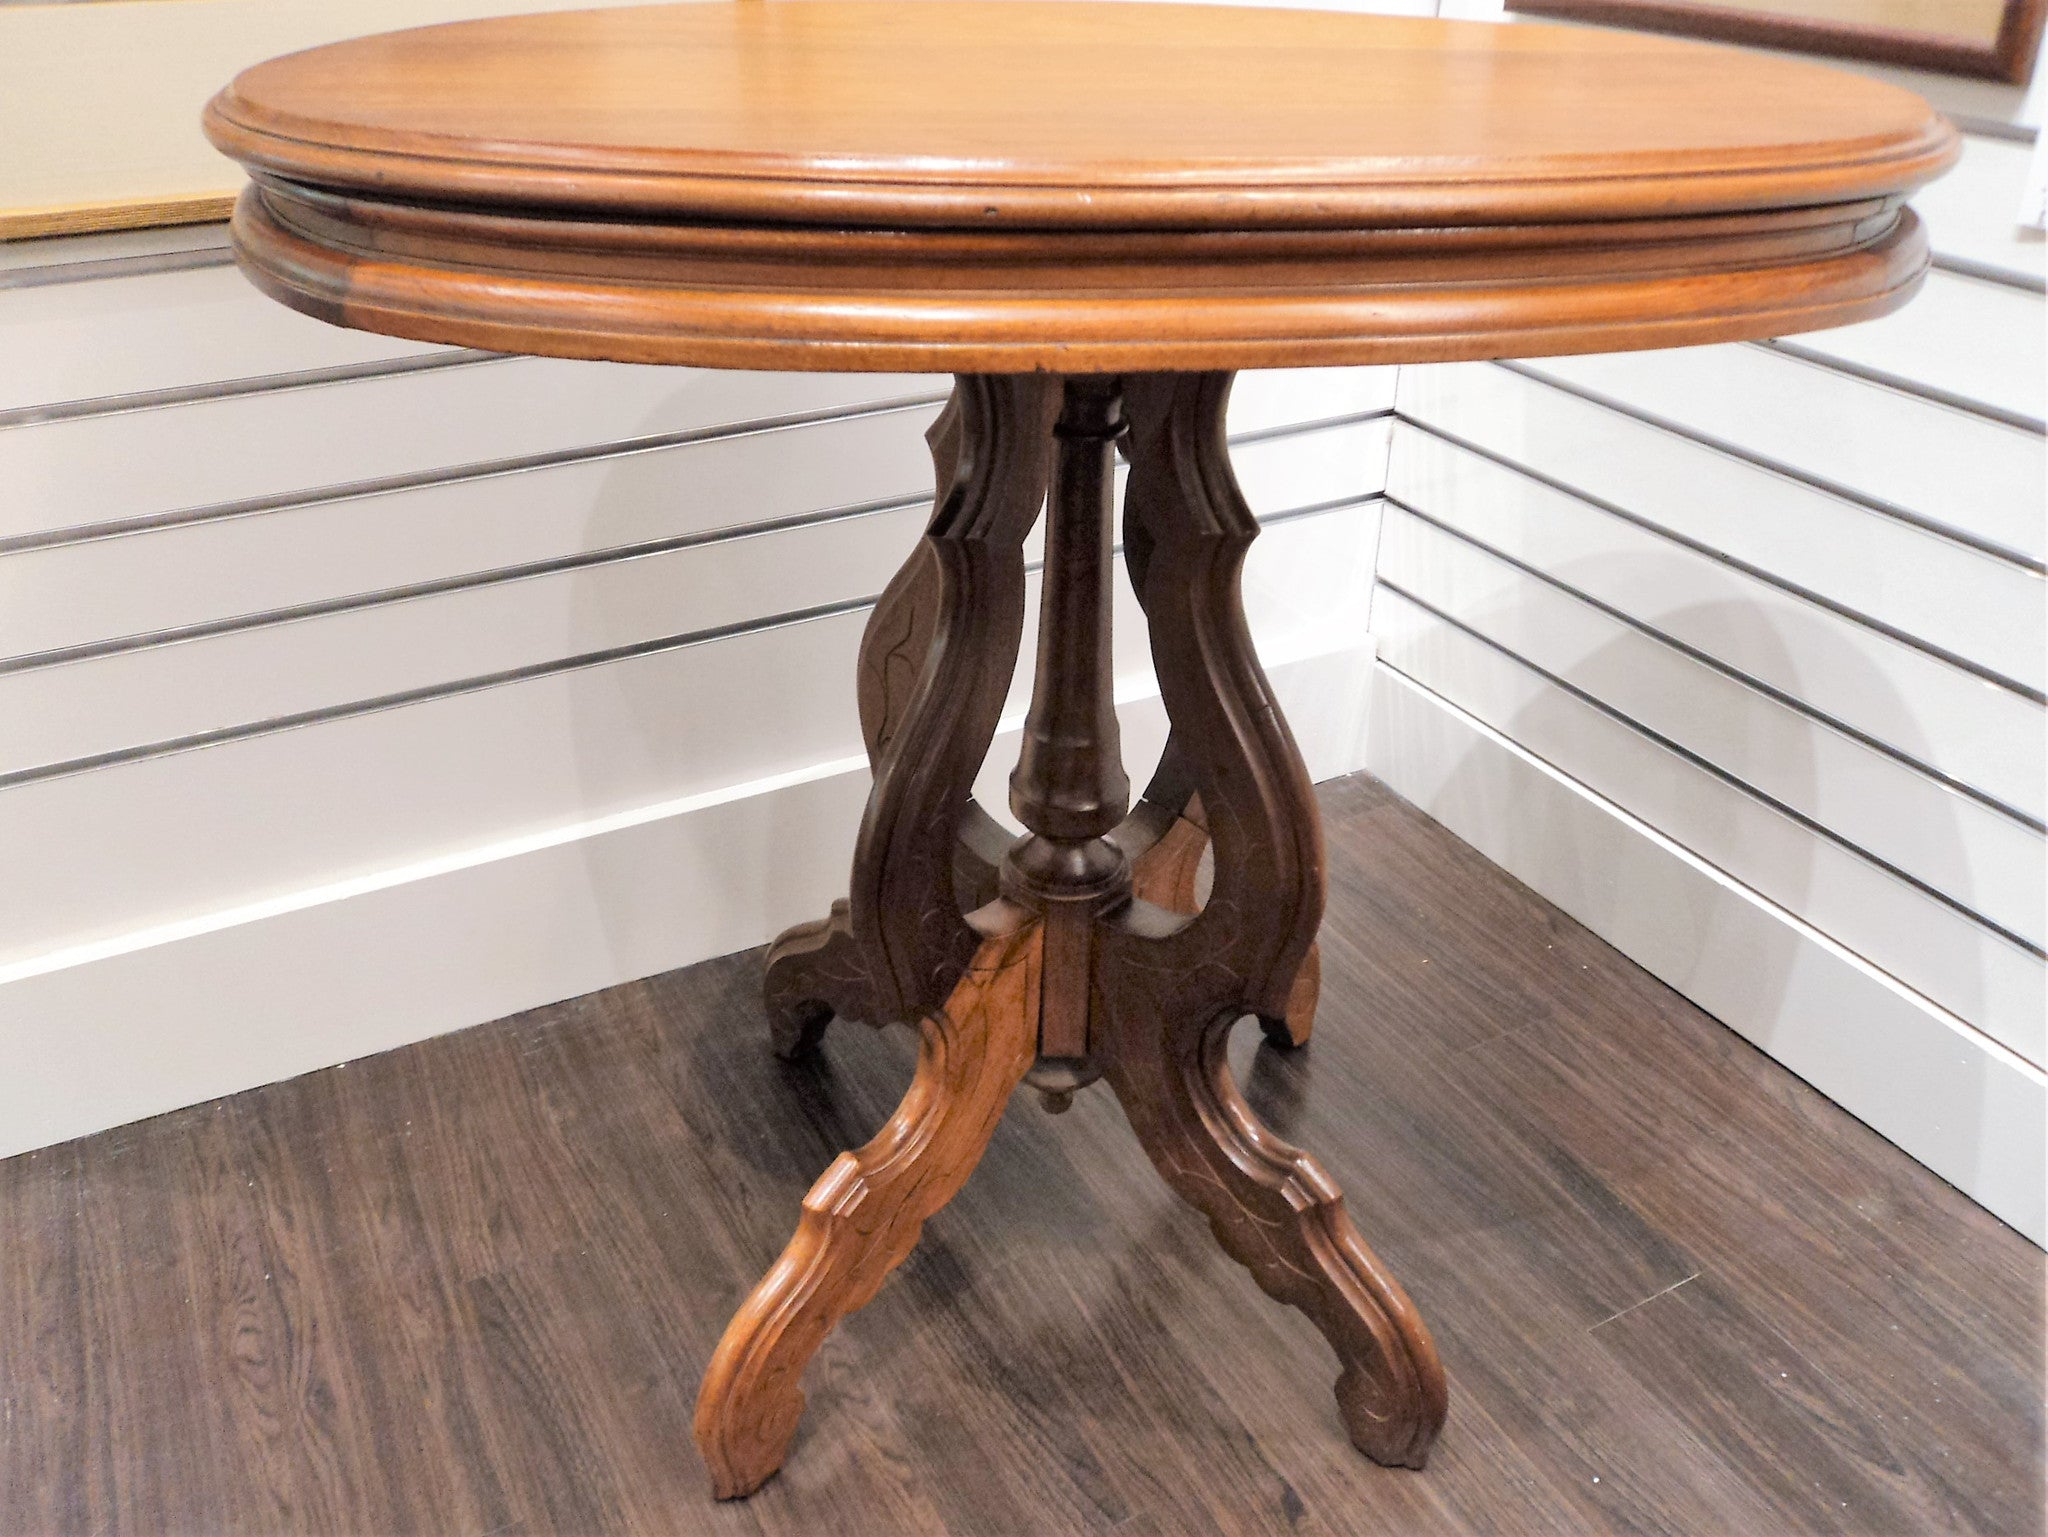 Victorian Walnut Oblong Table